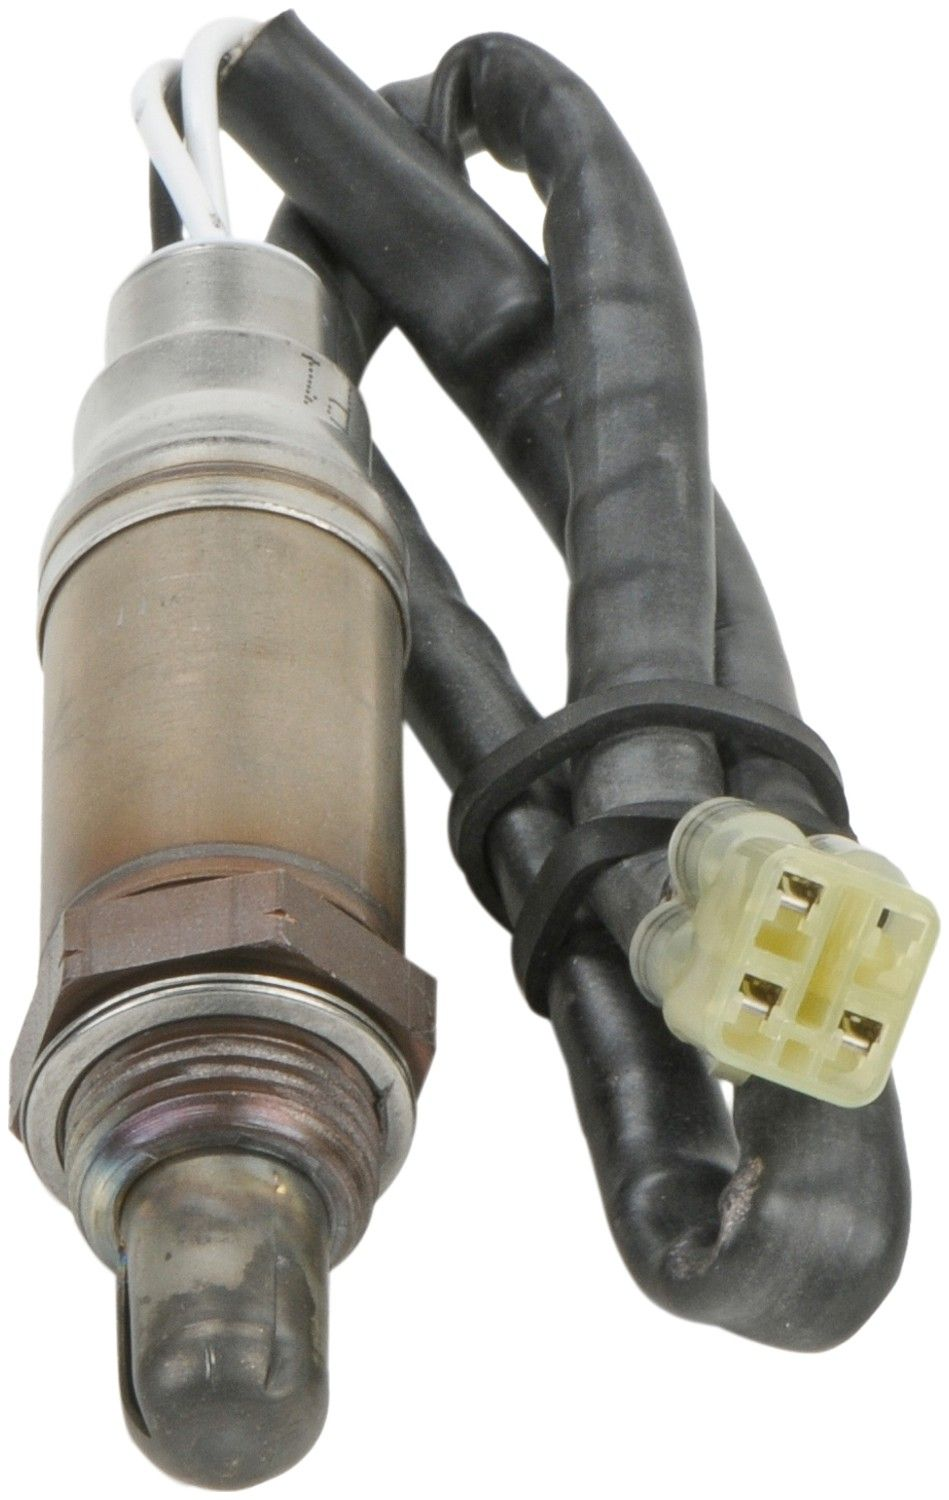 Subaru Svx Oxygen Sensor Replacement Bosch Delphi Denso Ngk Engine Wiring Harness For 1994 Upstream 6 Cyl 33l 13250 Is The Oe Equivalent Supplier